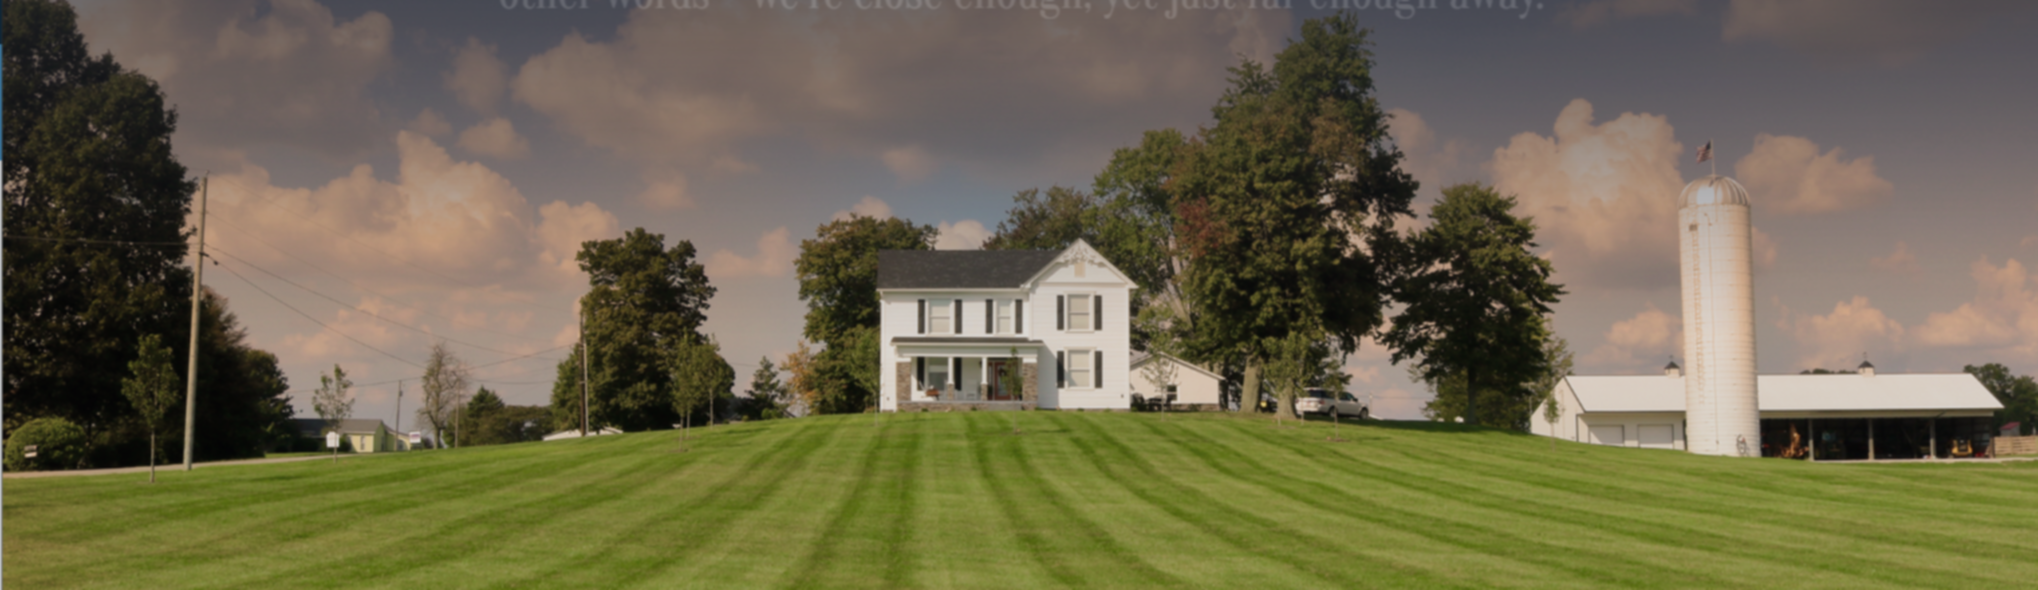 A house with a grass field at The Old Farmhouse B&B.